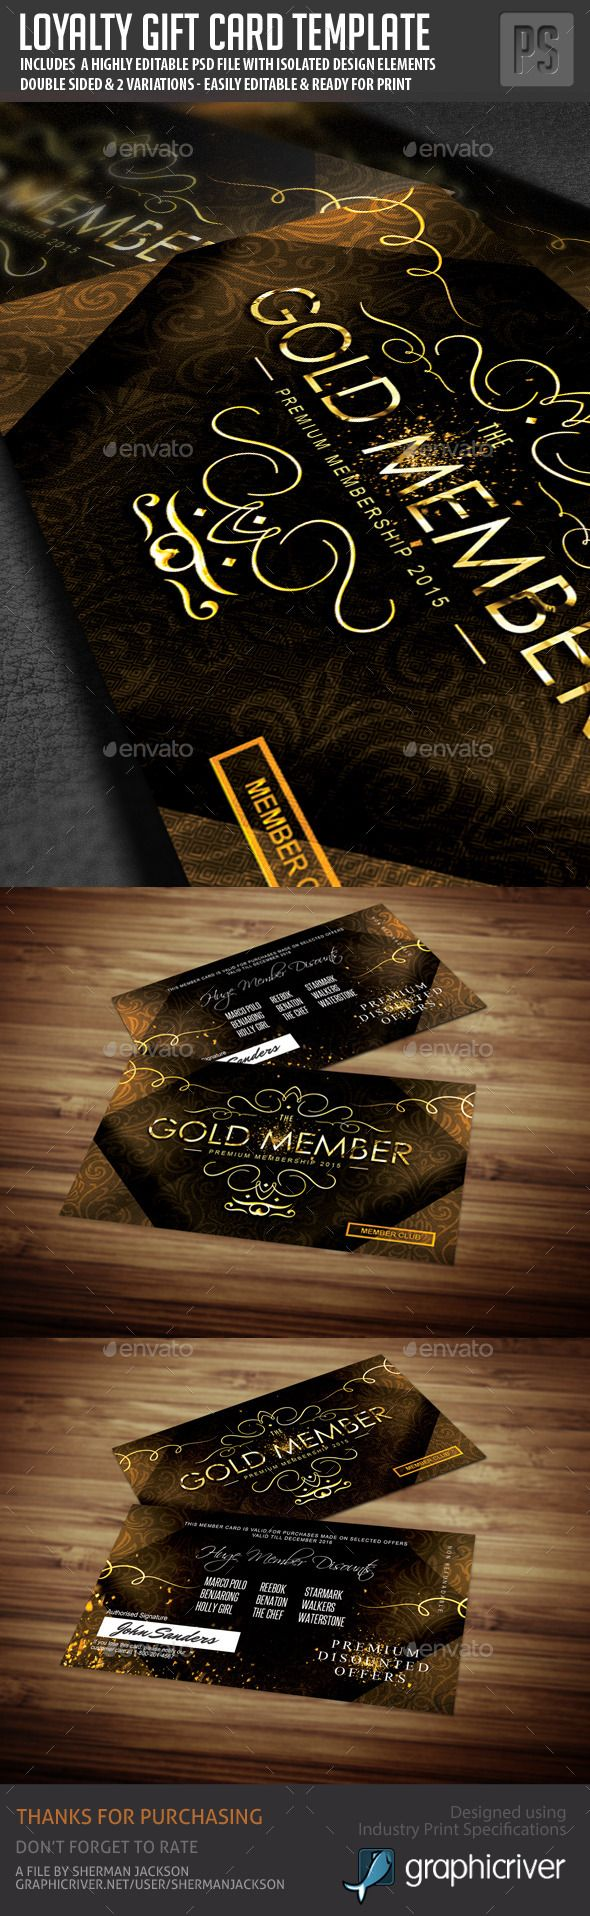 163 best voucher template design images on pinterest loyalty golden loyalty card template yelopaper Image collections